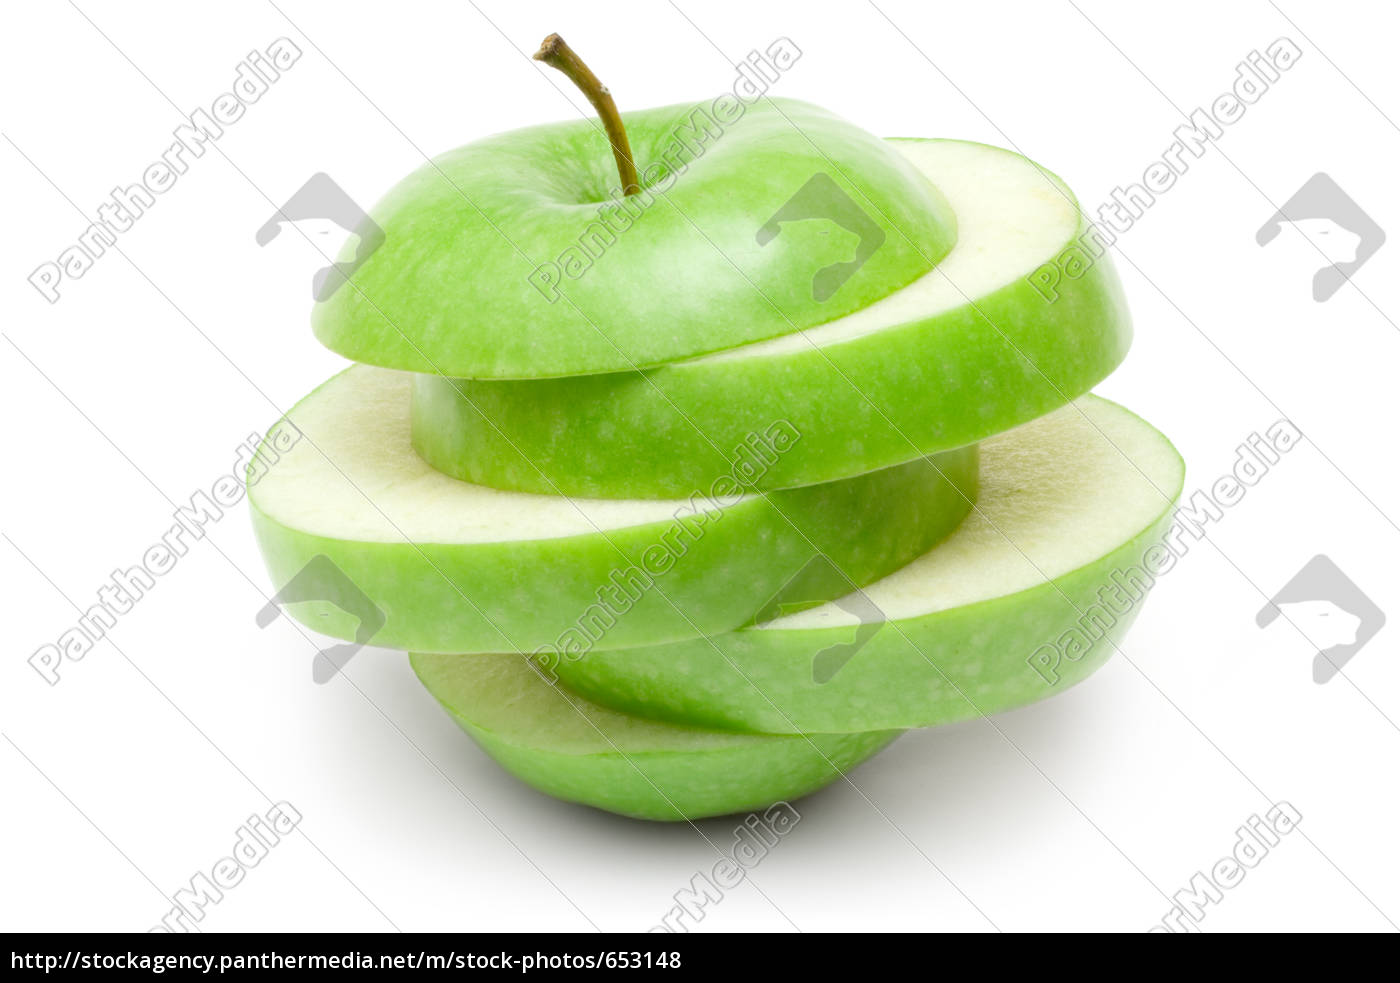 apple, slices - 653148